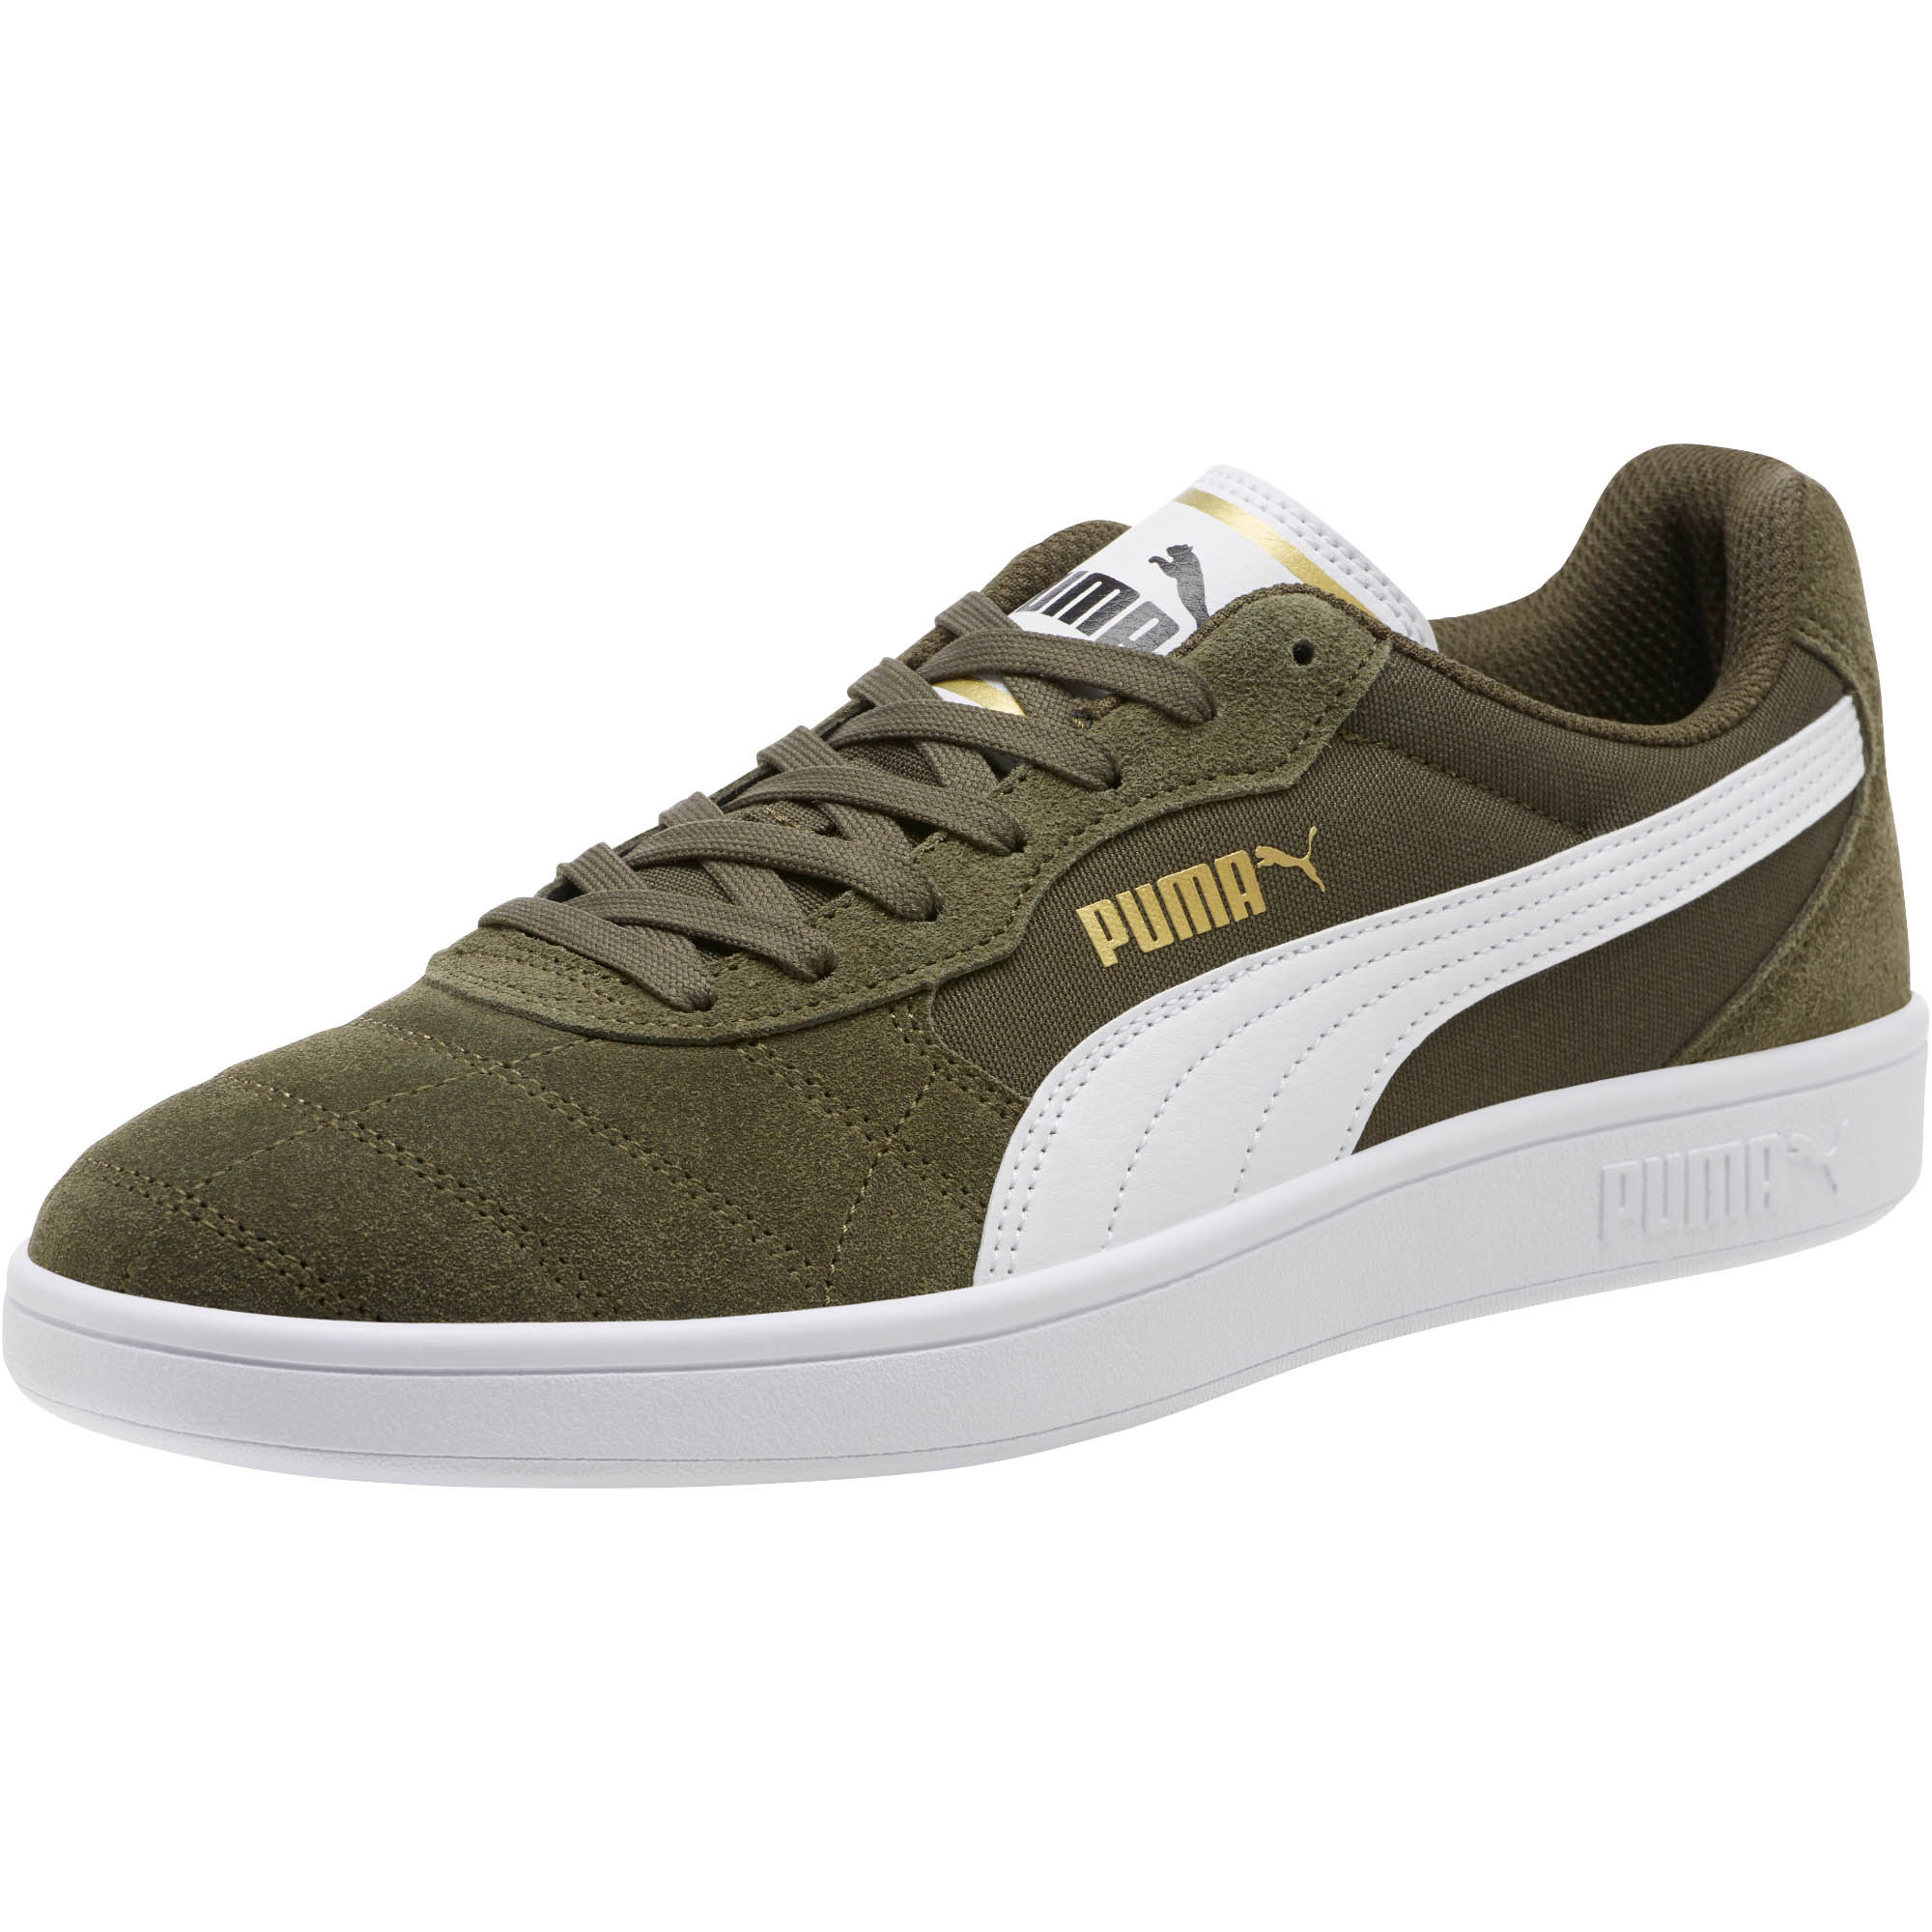 PUMA-Astro-Kick-Men-039-s-Sneakers-Men-Shoe-Basics thumbnail 16